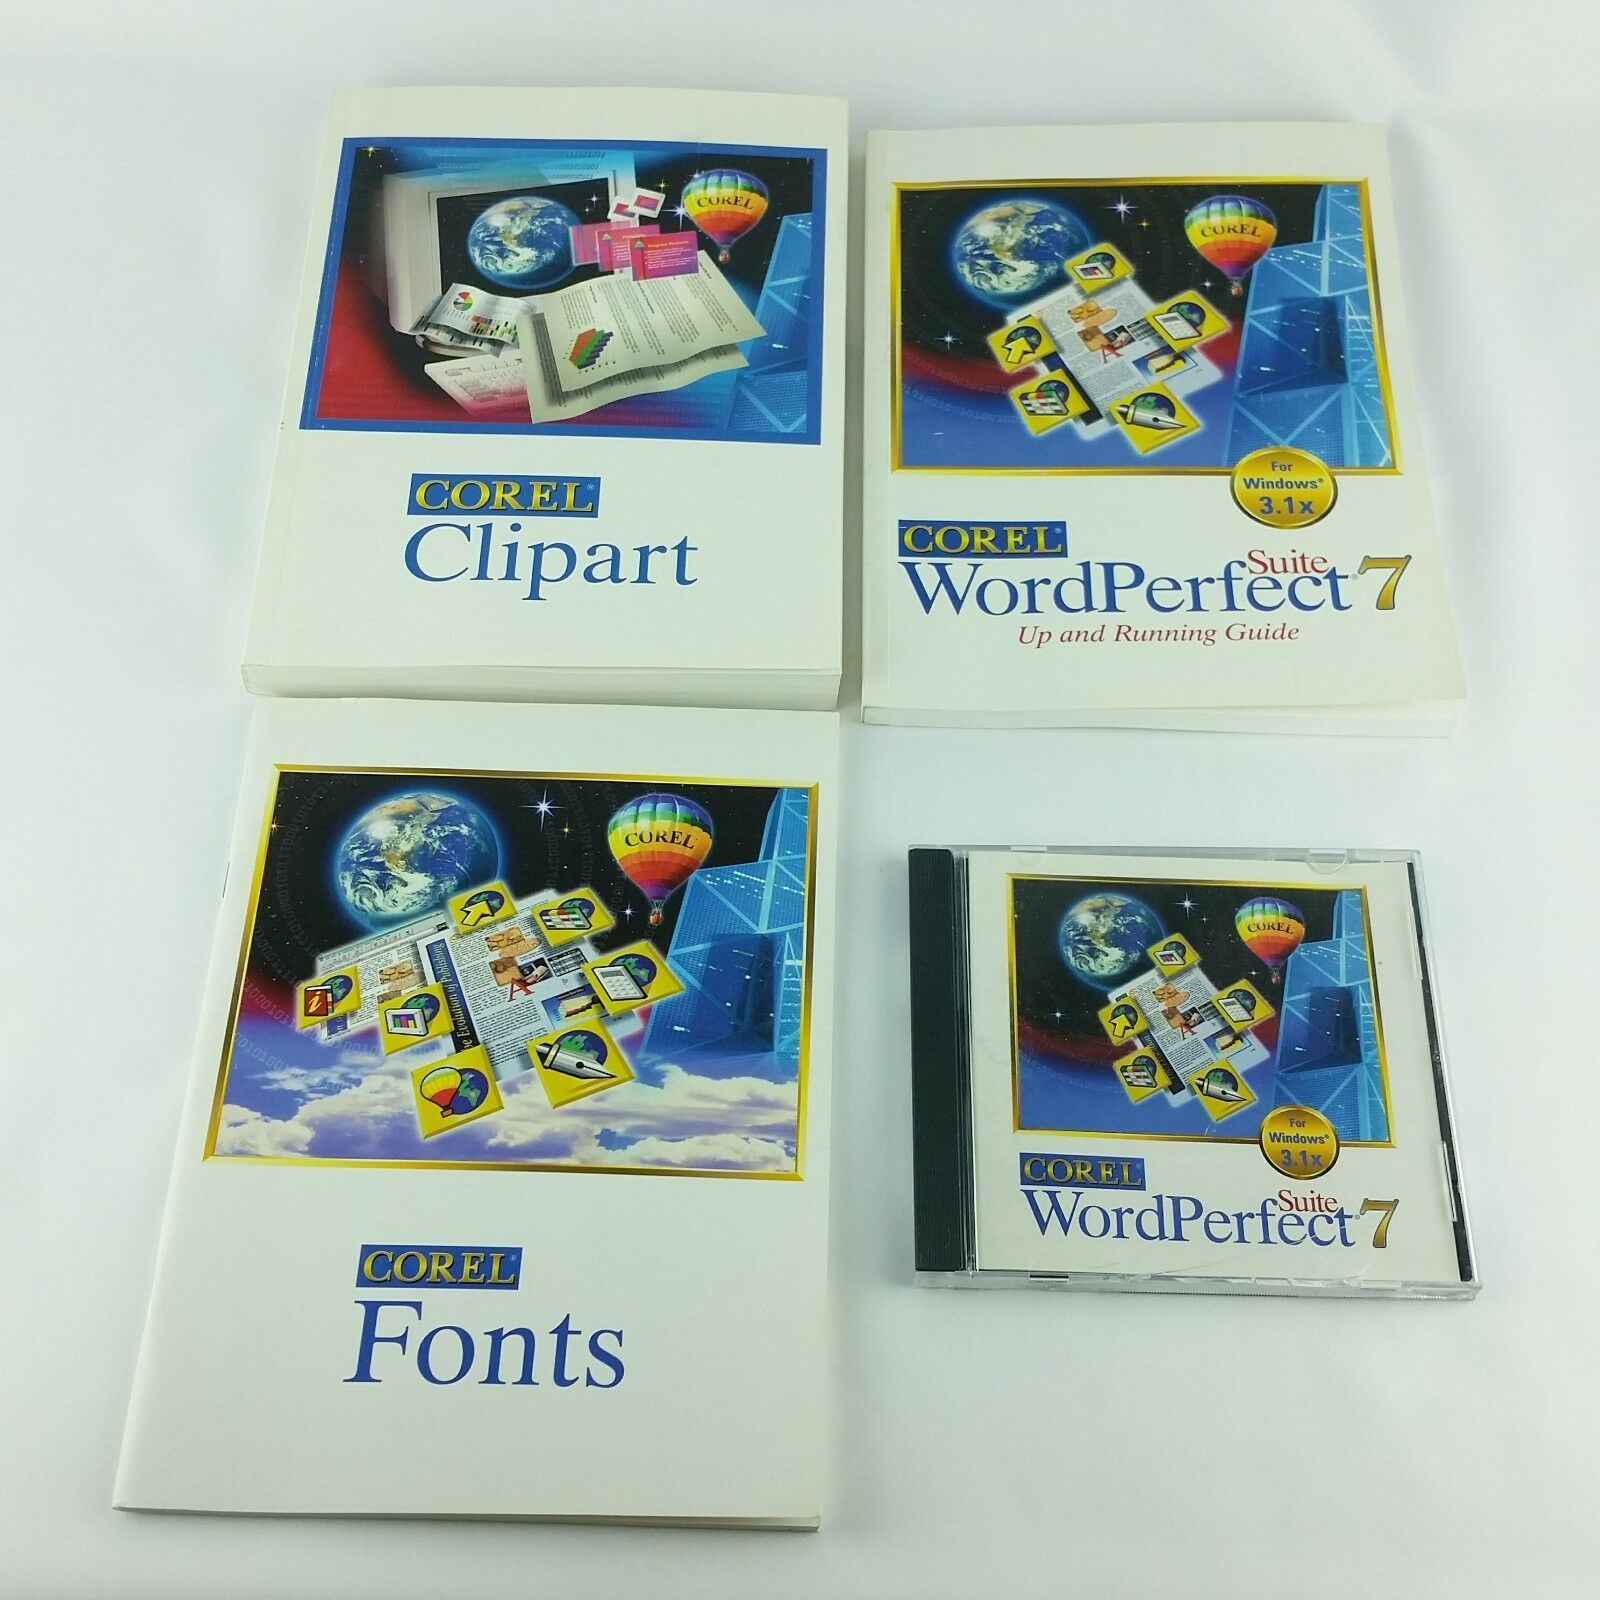 Corel WordPerfect 7 Suite Windows 3.1x  Books and CD Vintage Quattro Pro Paradox